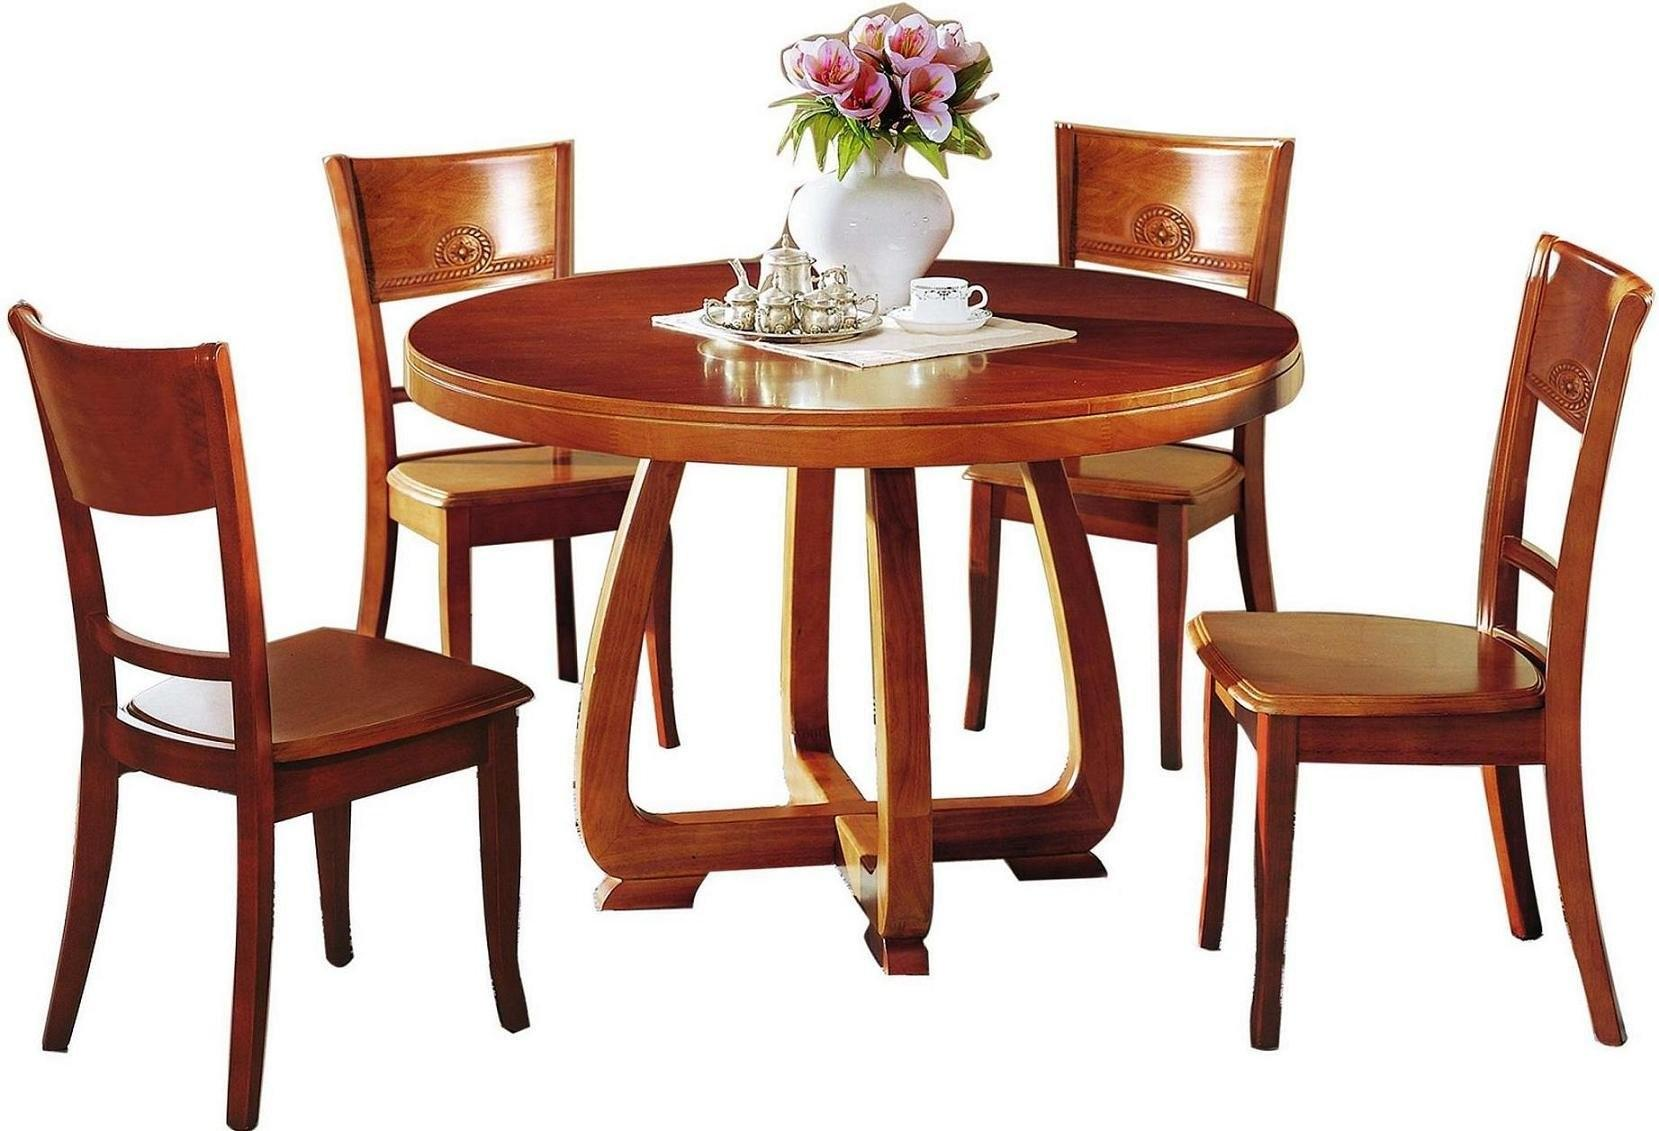 Dining Room Inspiring Wooden Tables Chairs